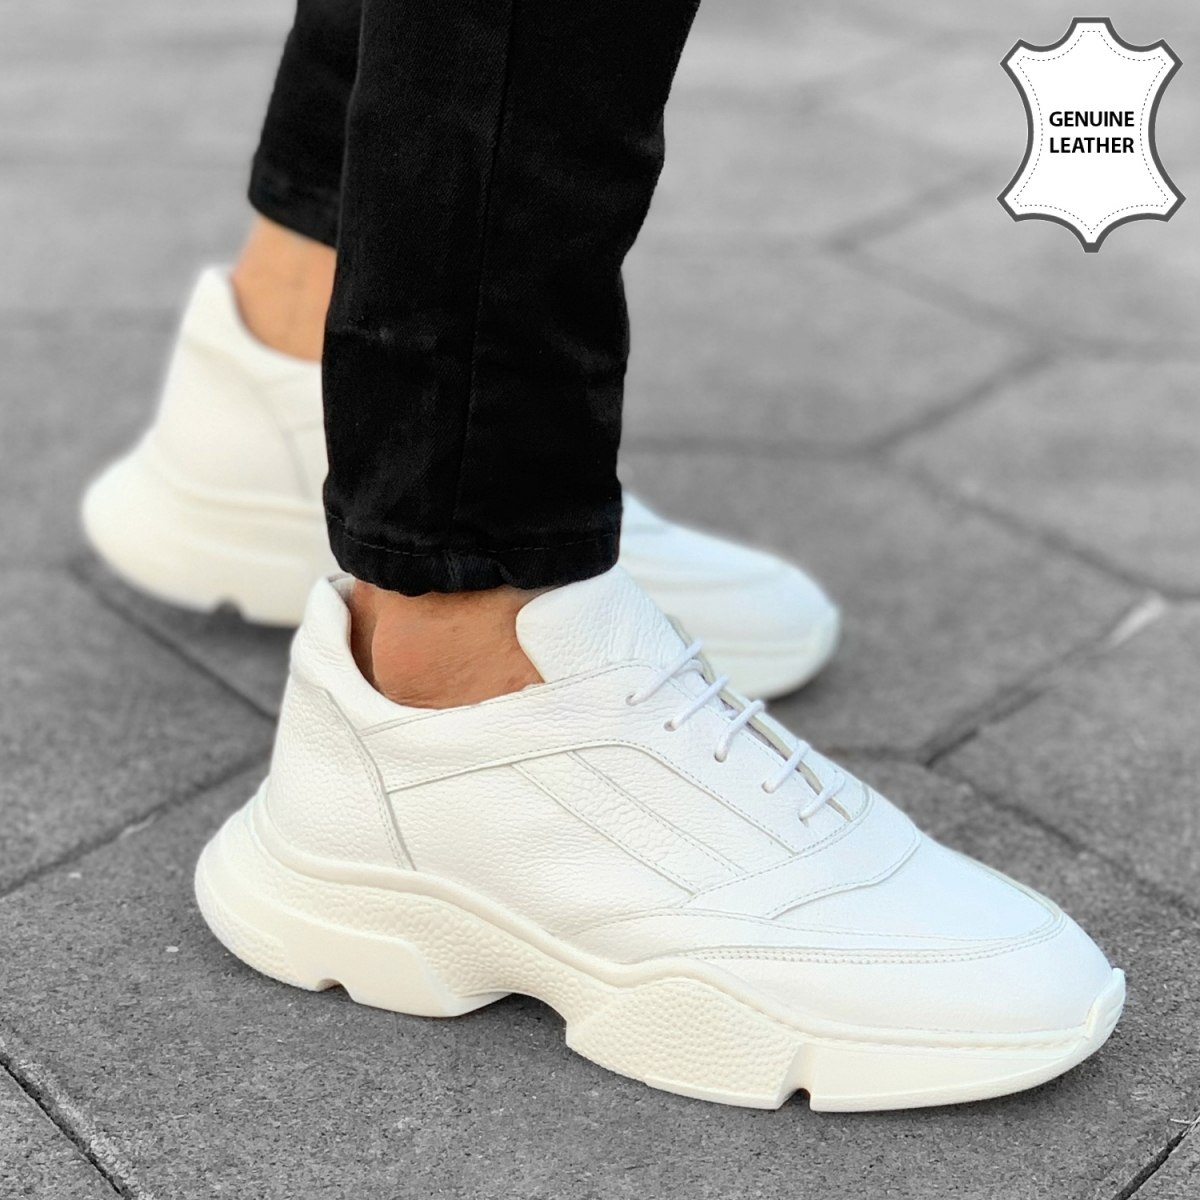 Premium Leather Dyno-Sole Sneakers in Full White